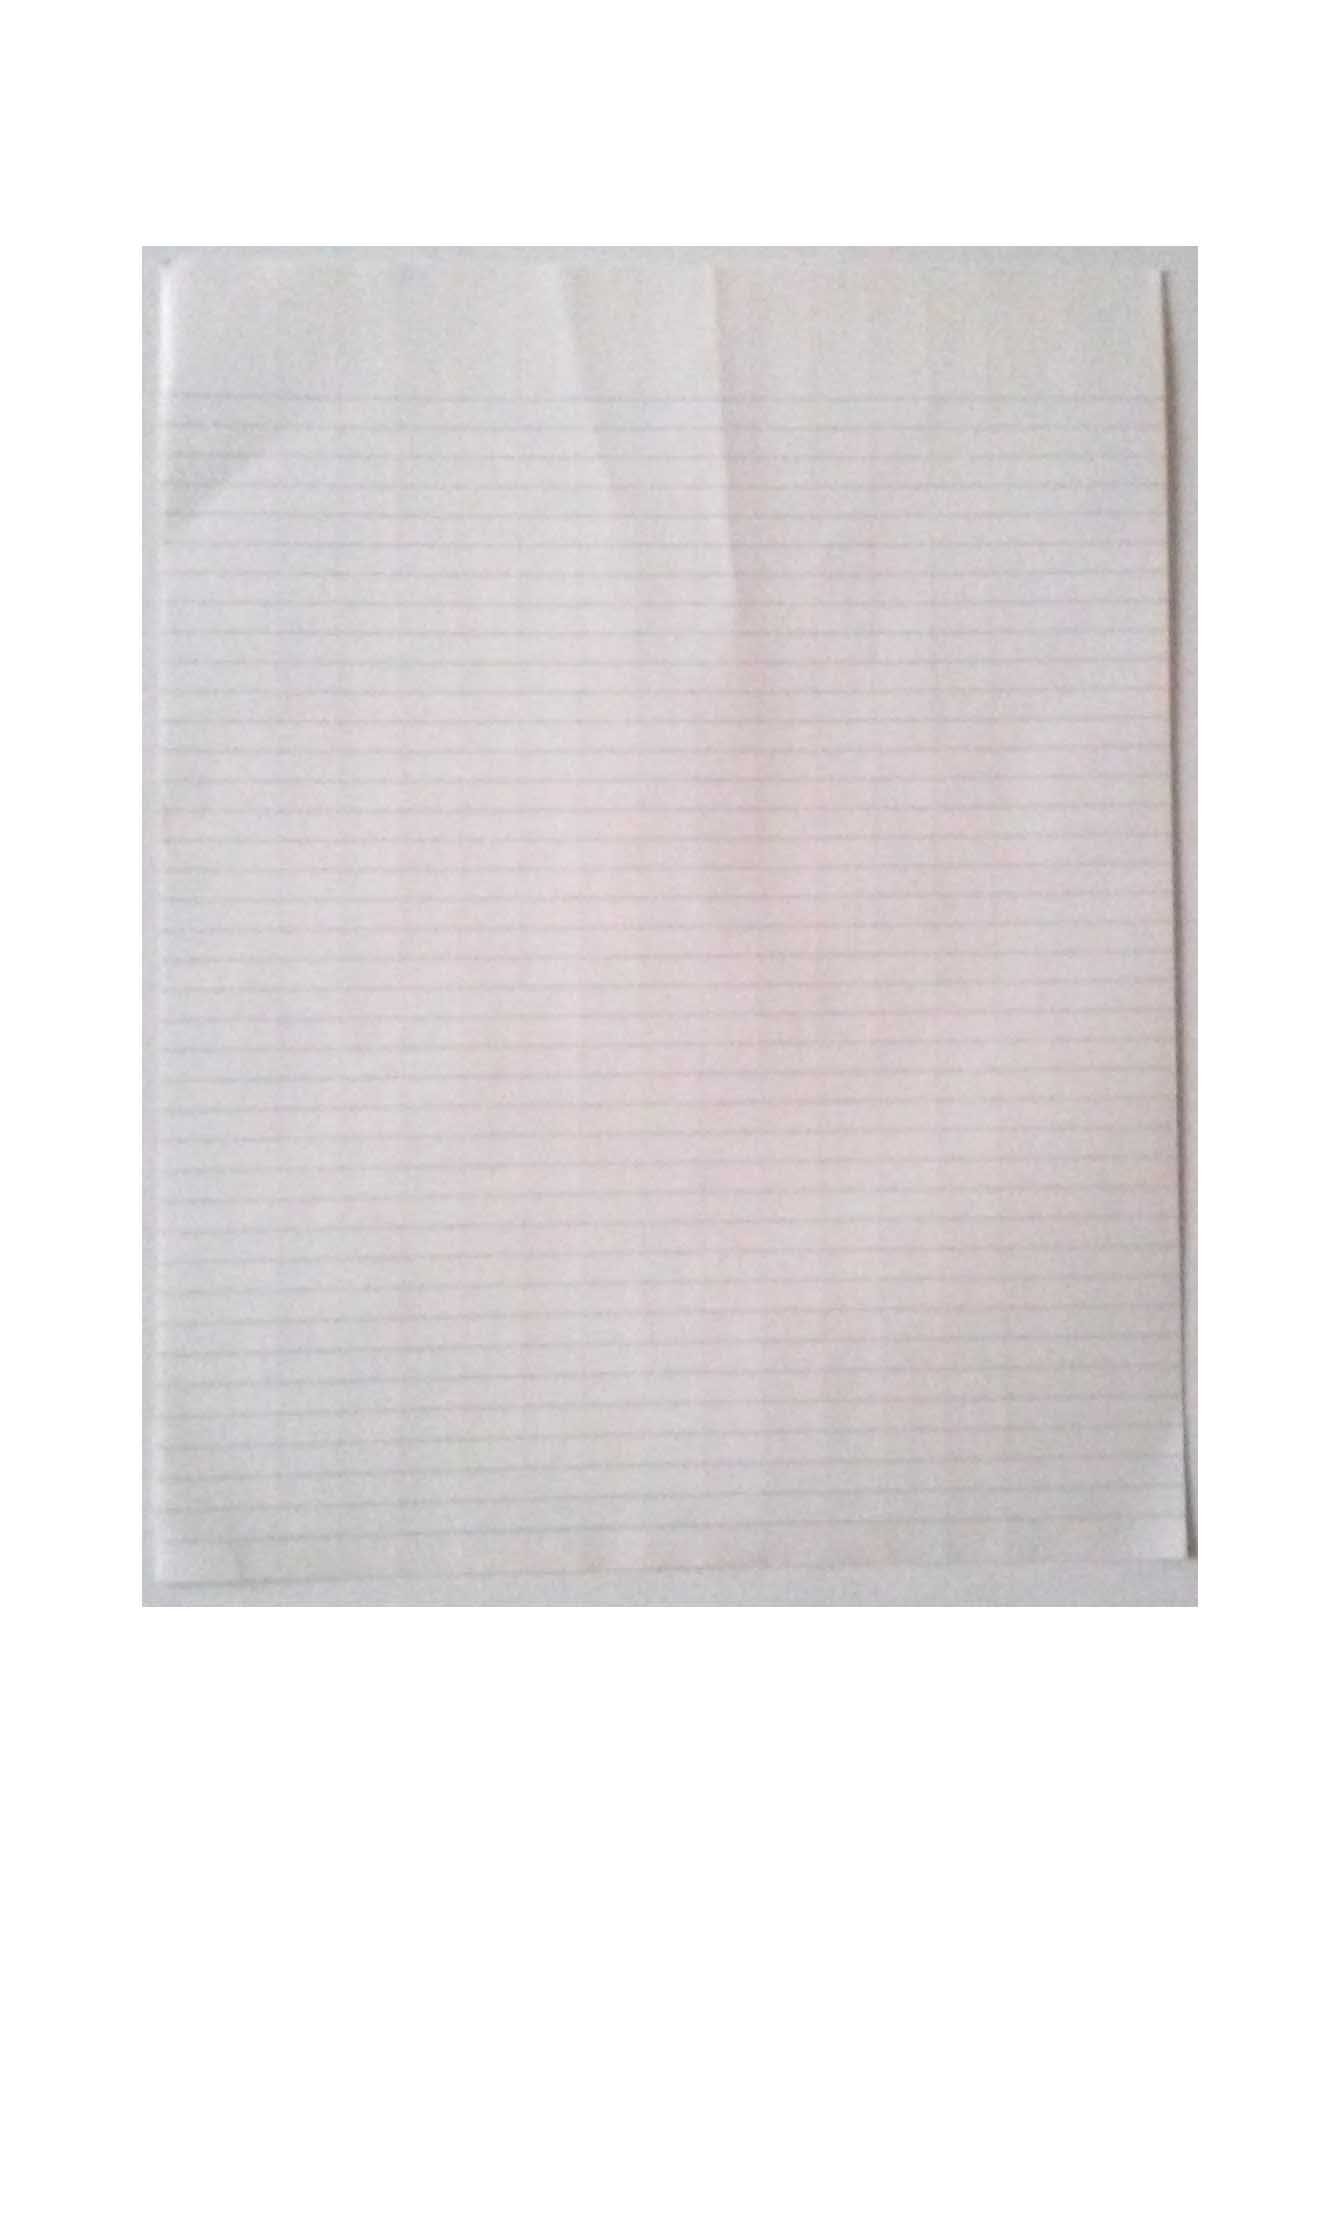 National 10 Column Columnar Sheets 8 1/2'' x 11'' Loose Sold in Packages of 20 Sheets